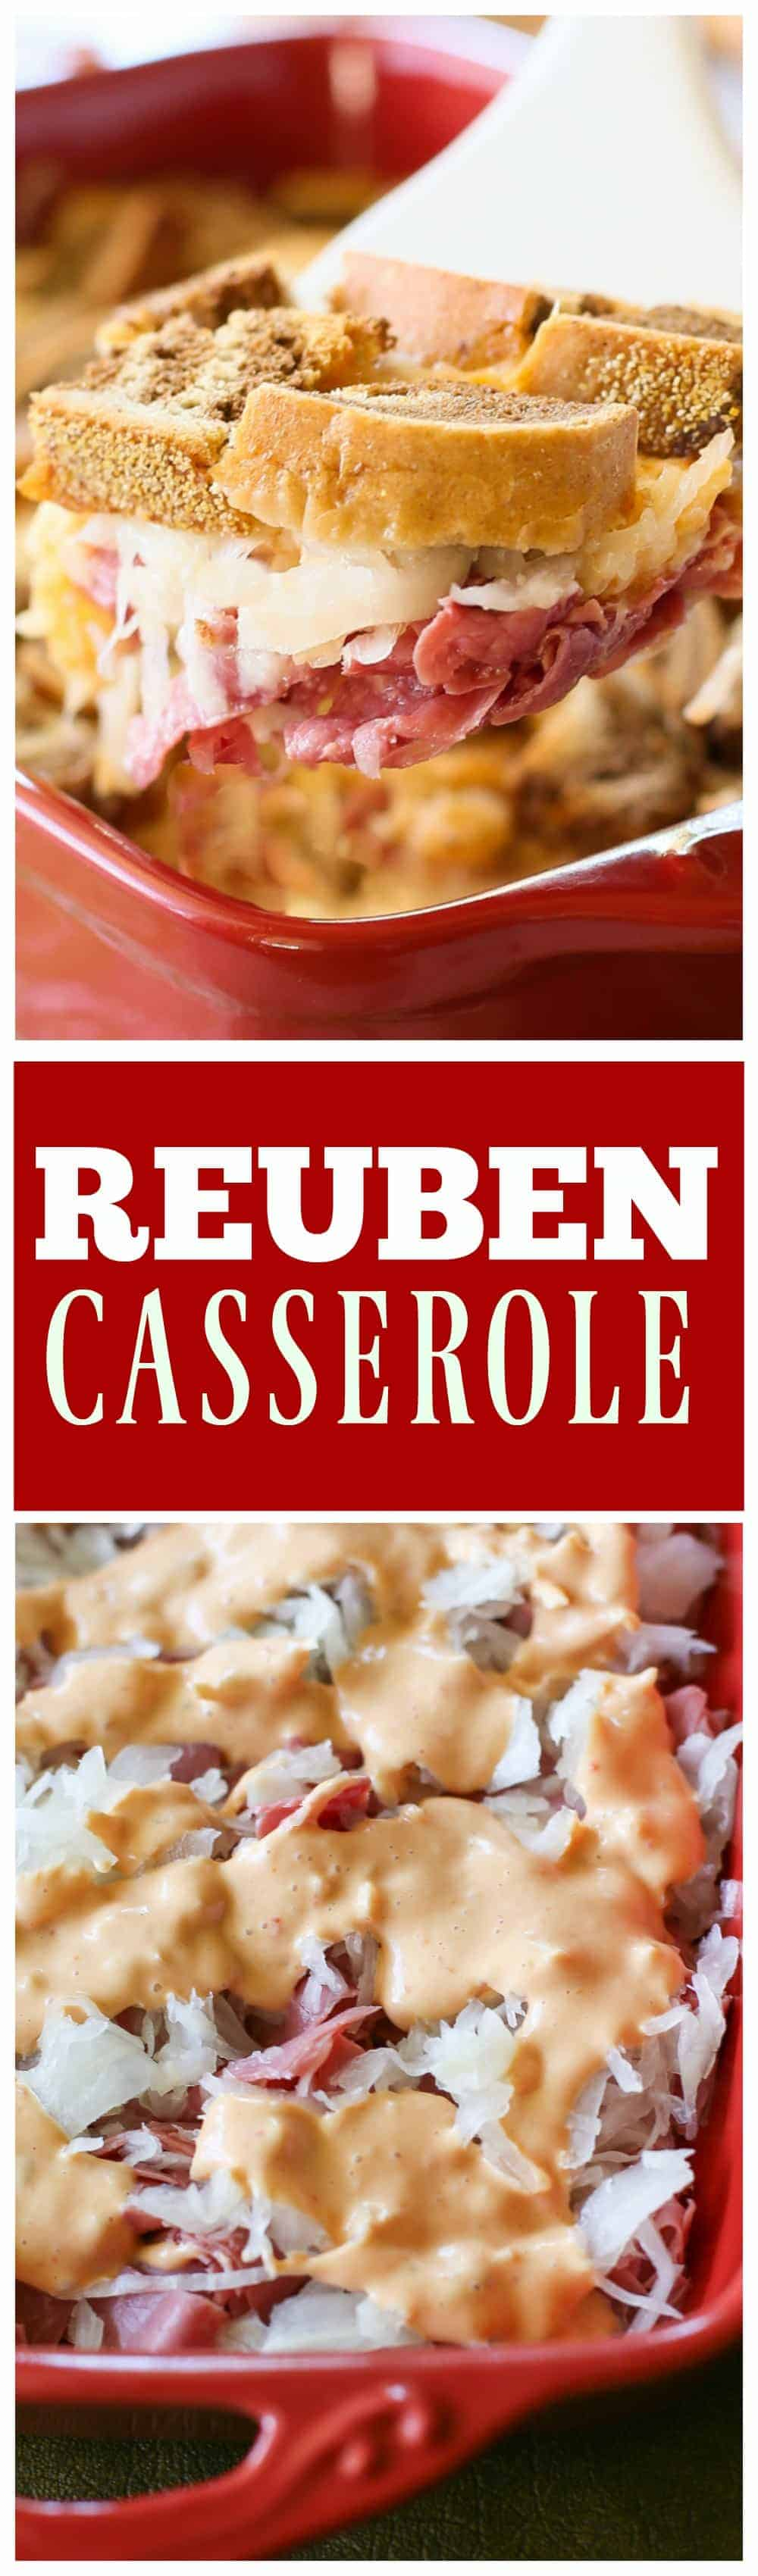 Corned beef, sauerkraut, Swiss cheese, Thousand Island dressing and Rye bread all make this Reuben Casserole taste just like the sandwich. #reuben #casserole #stpatricksday